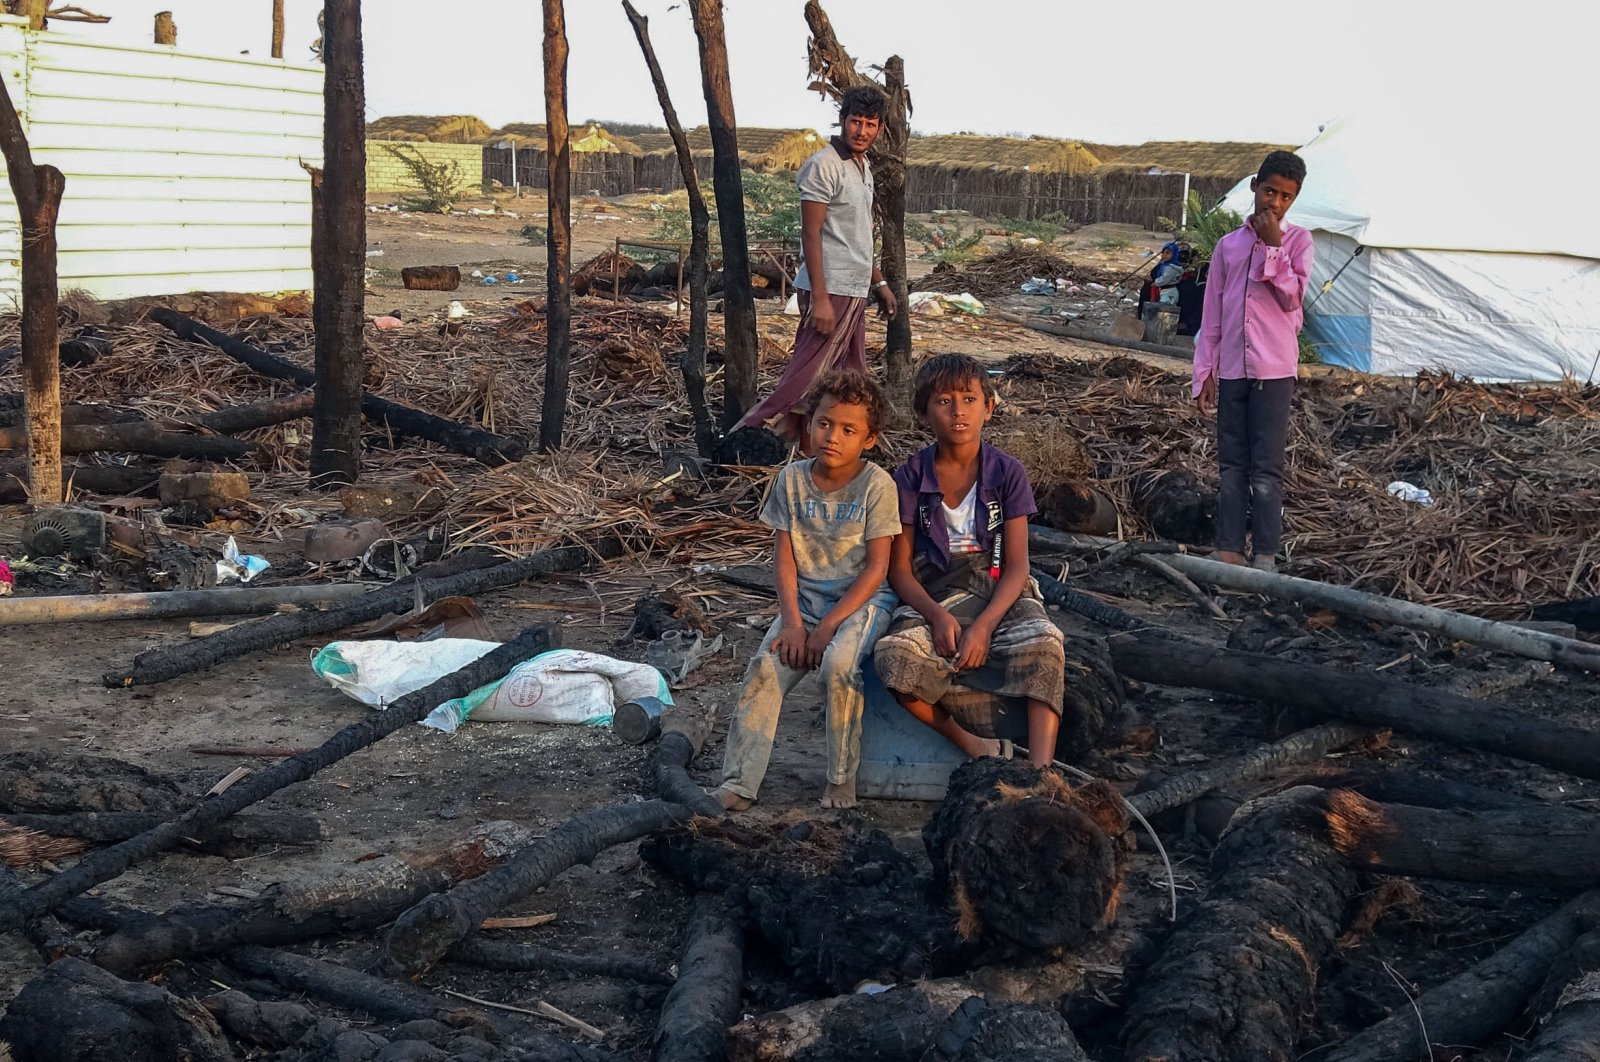 Displaced Yemeni youths sit by calcined wooden poles after a fire broke out in a shelter in the war-ravaged western Hodeida province, on Feb. 16, 2021. (AFP Photo)